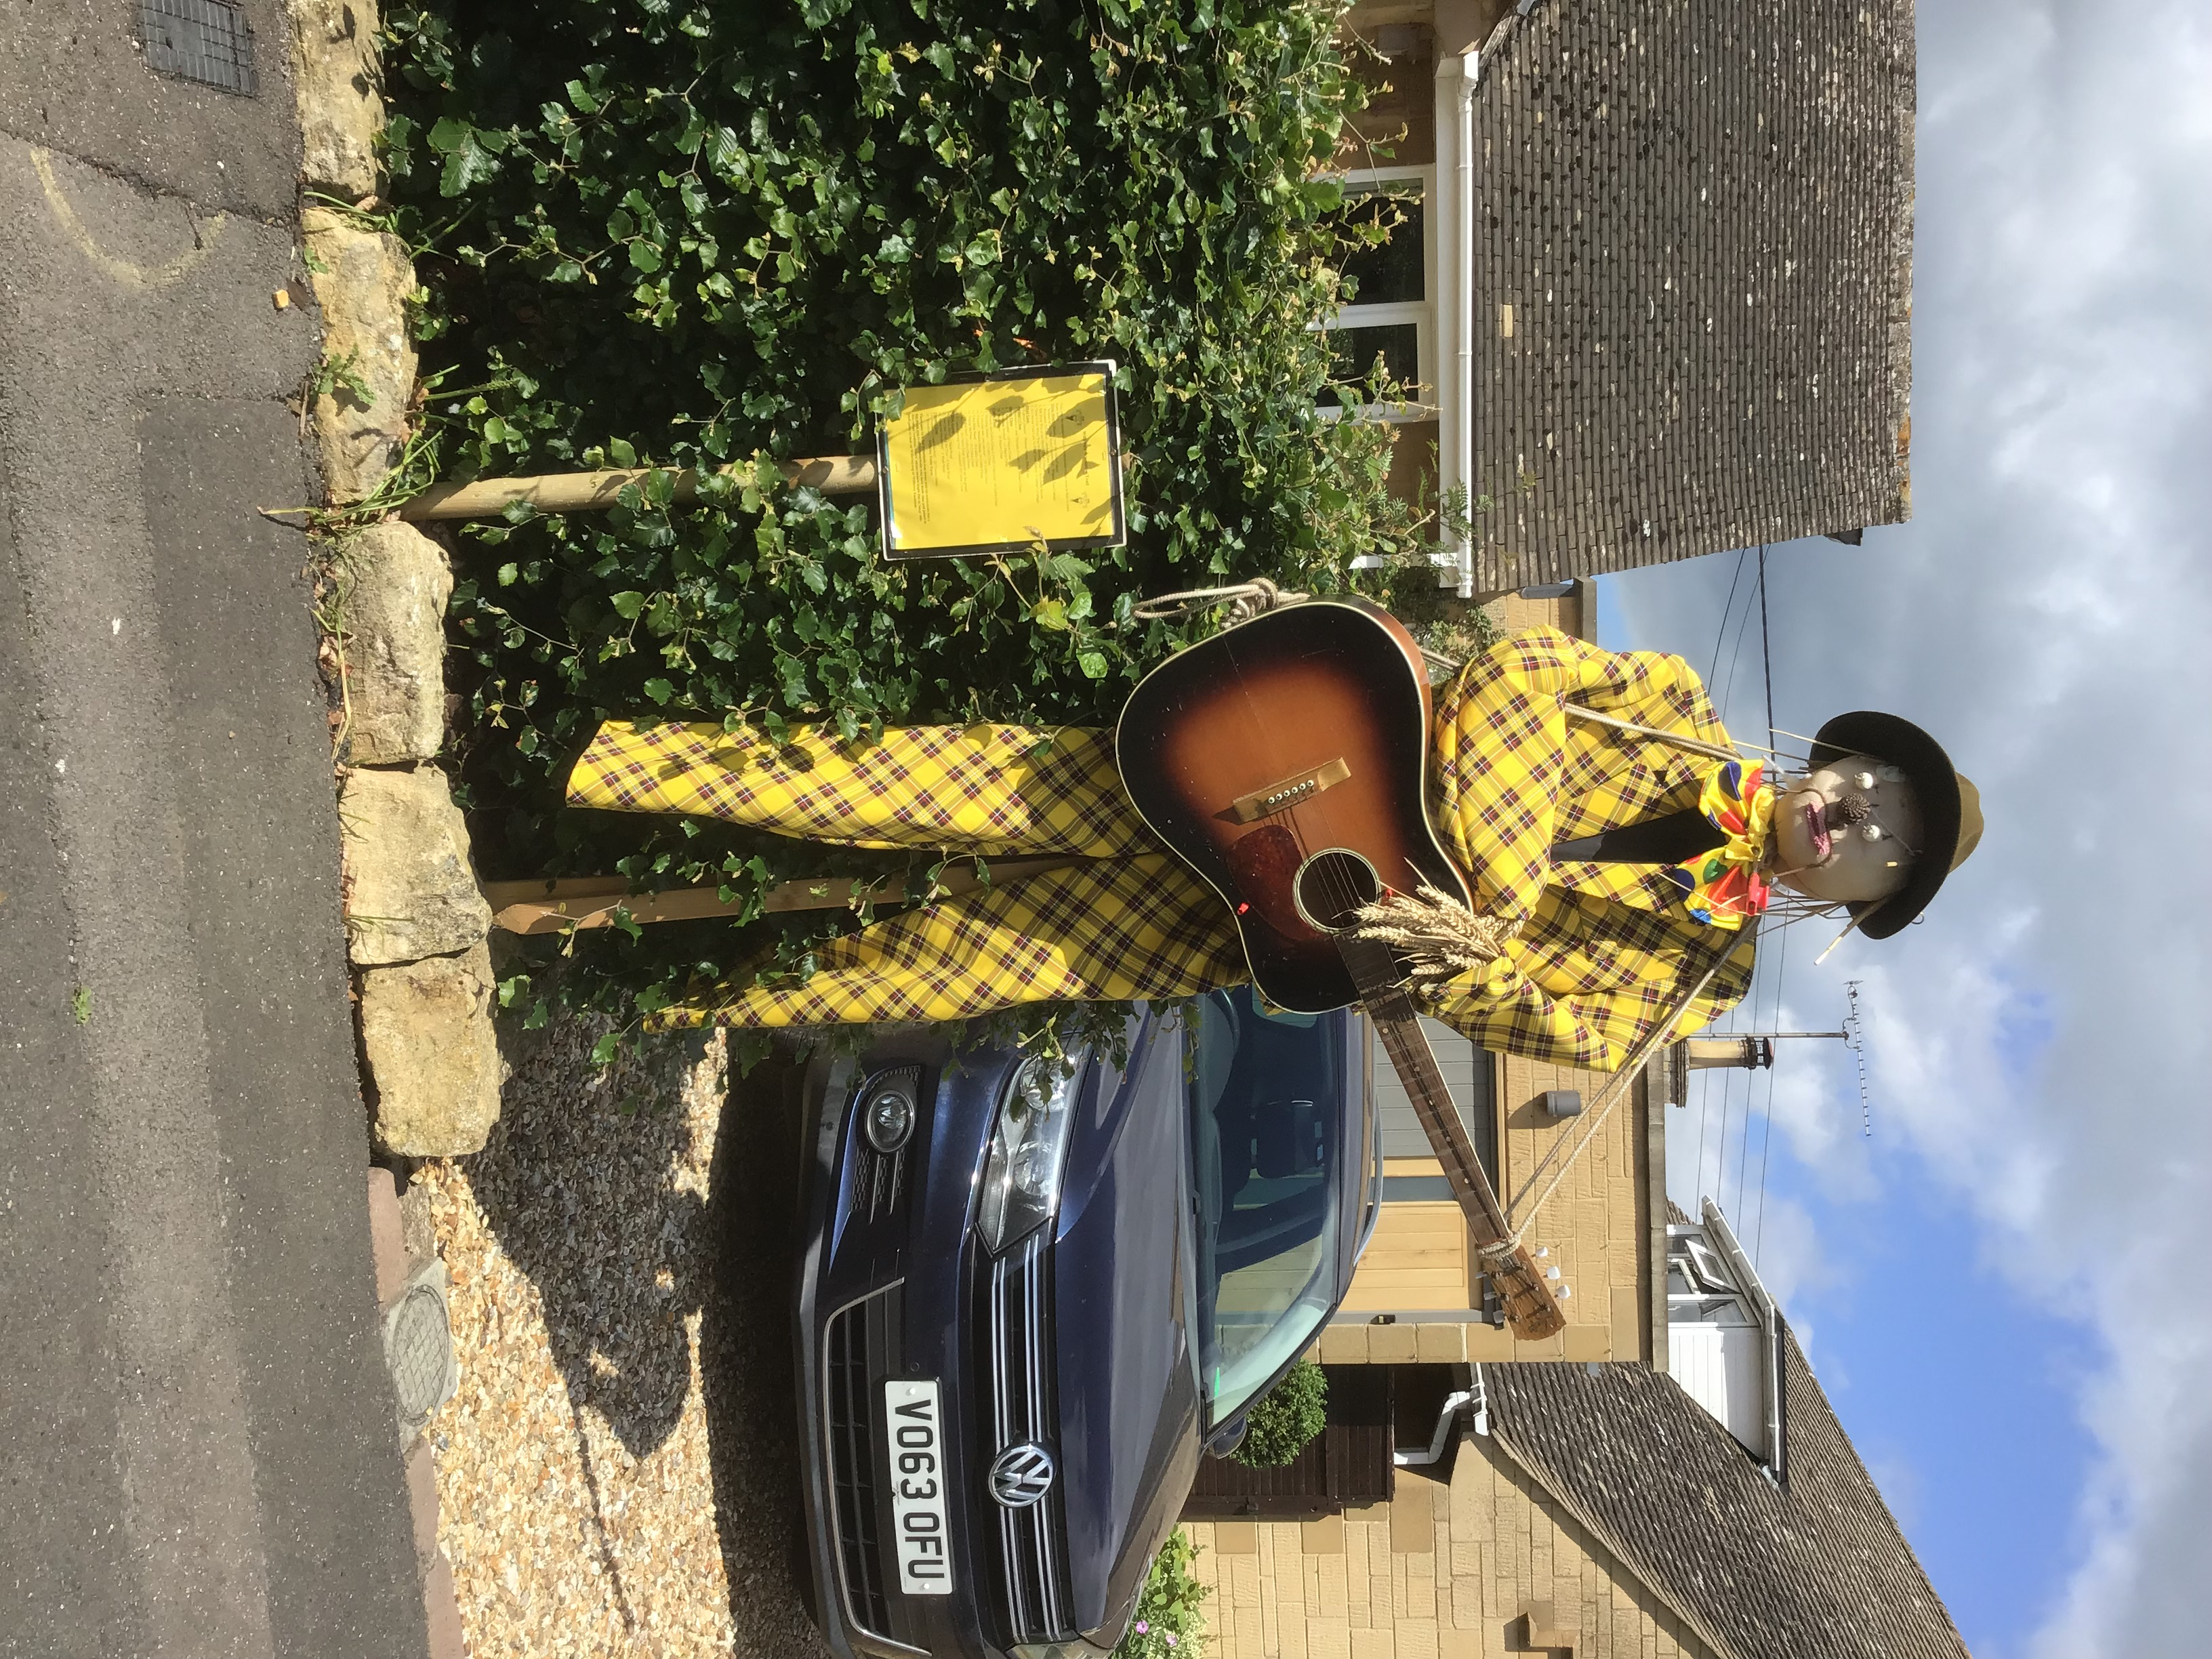 Willersey Scarecrow 24 2021